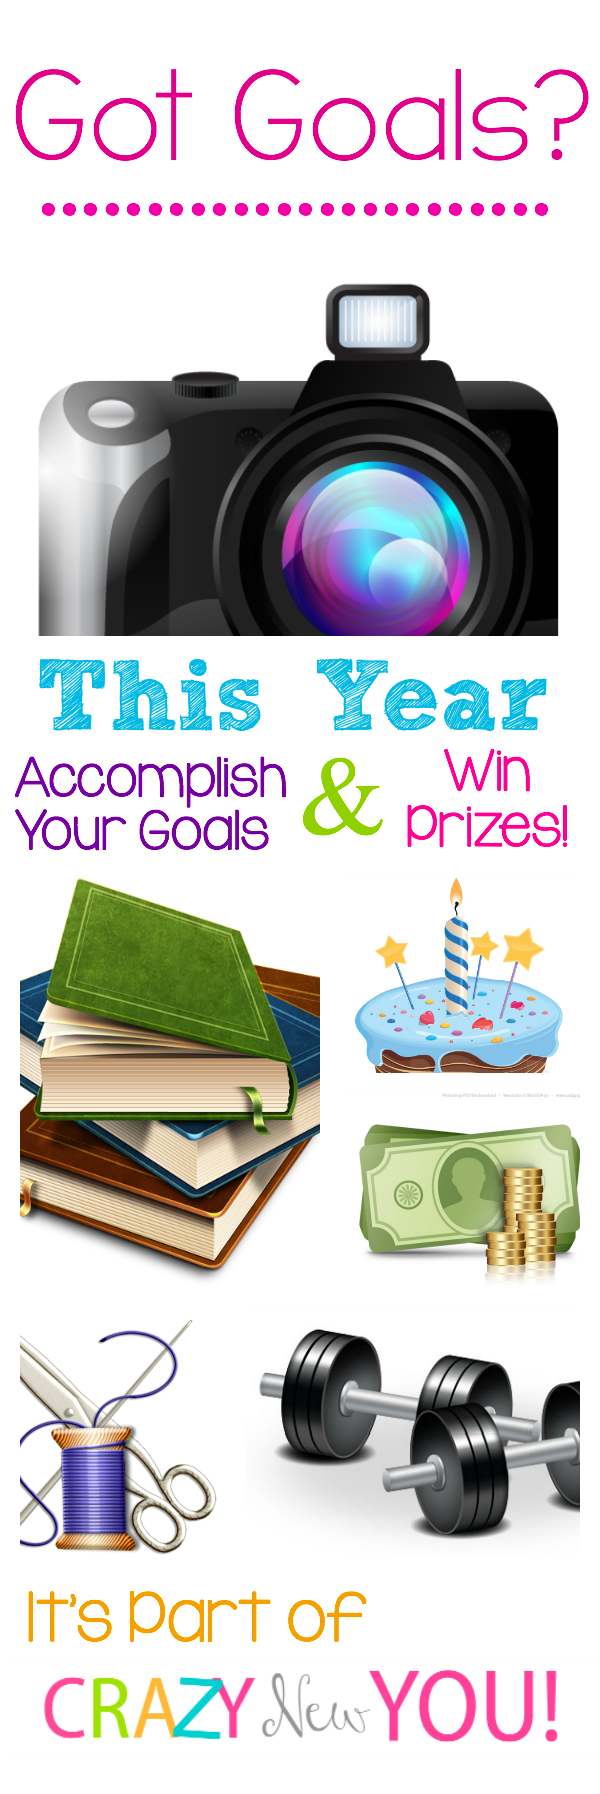 Join the New Year's Challenge! Set your own goals, enter to win fun prizes!!